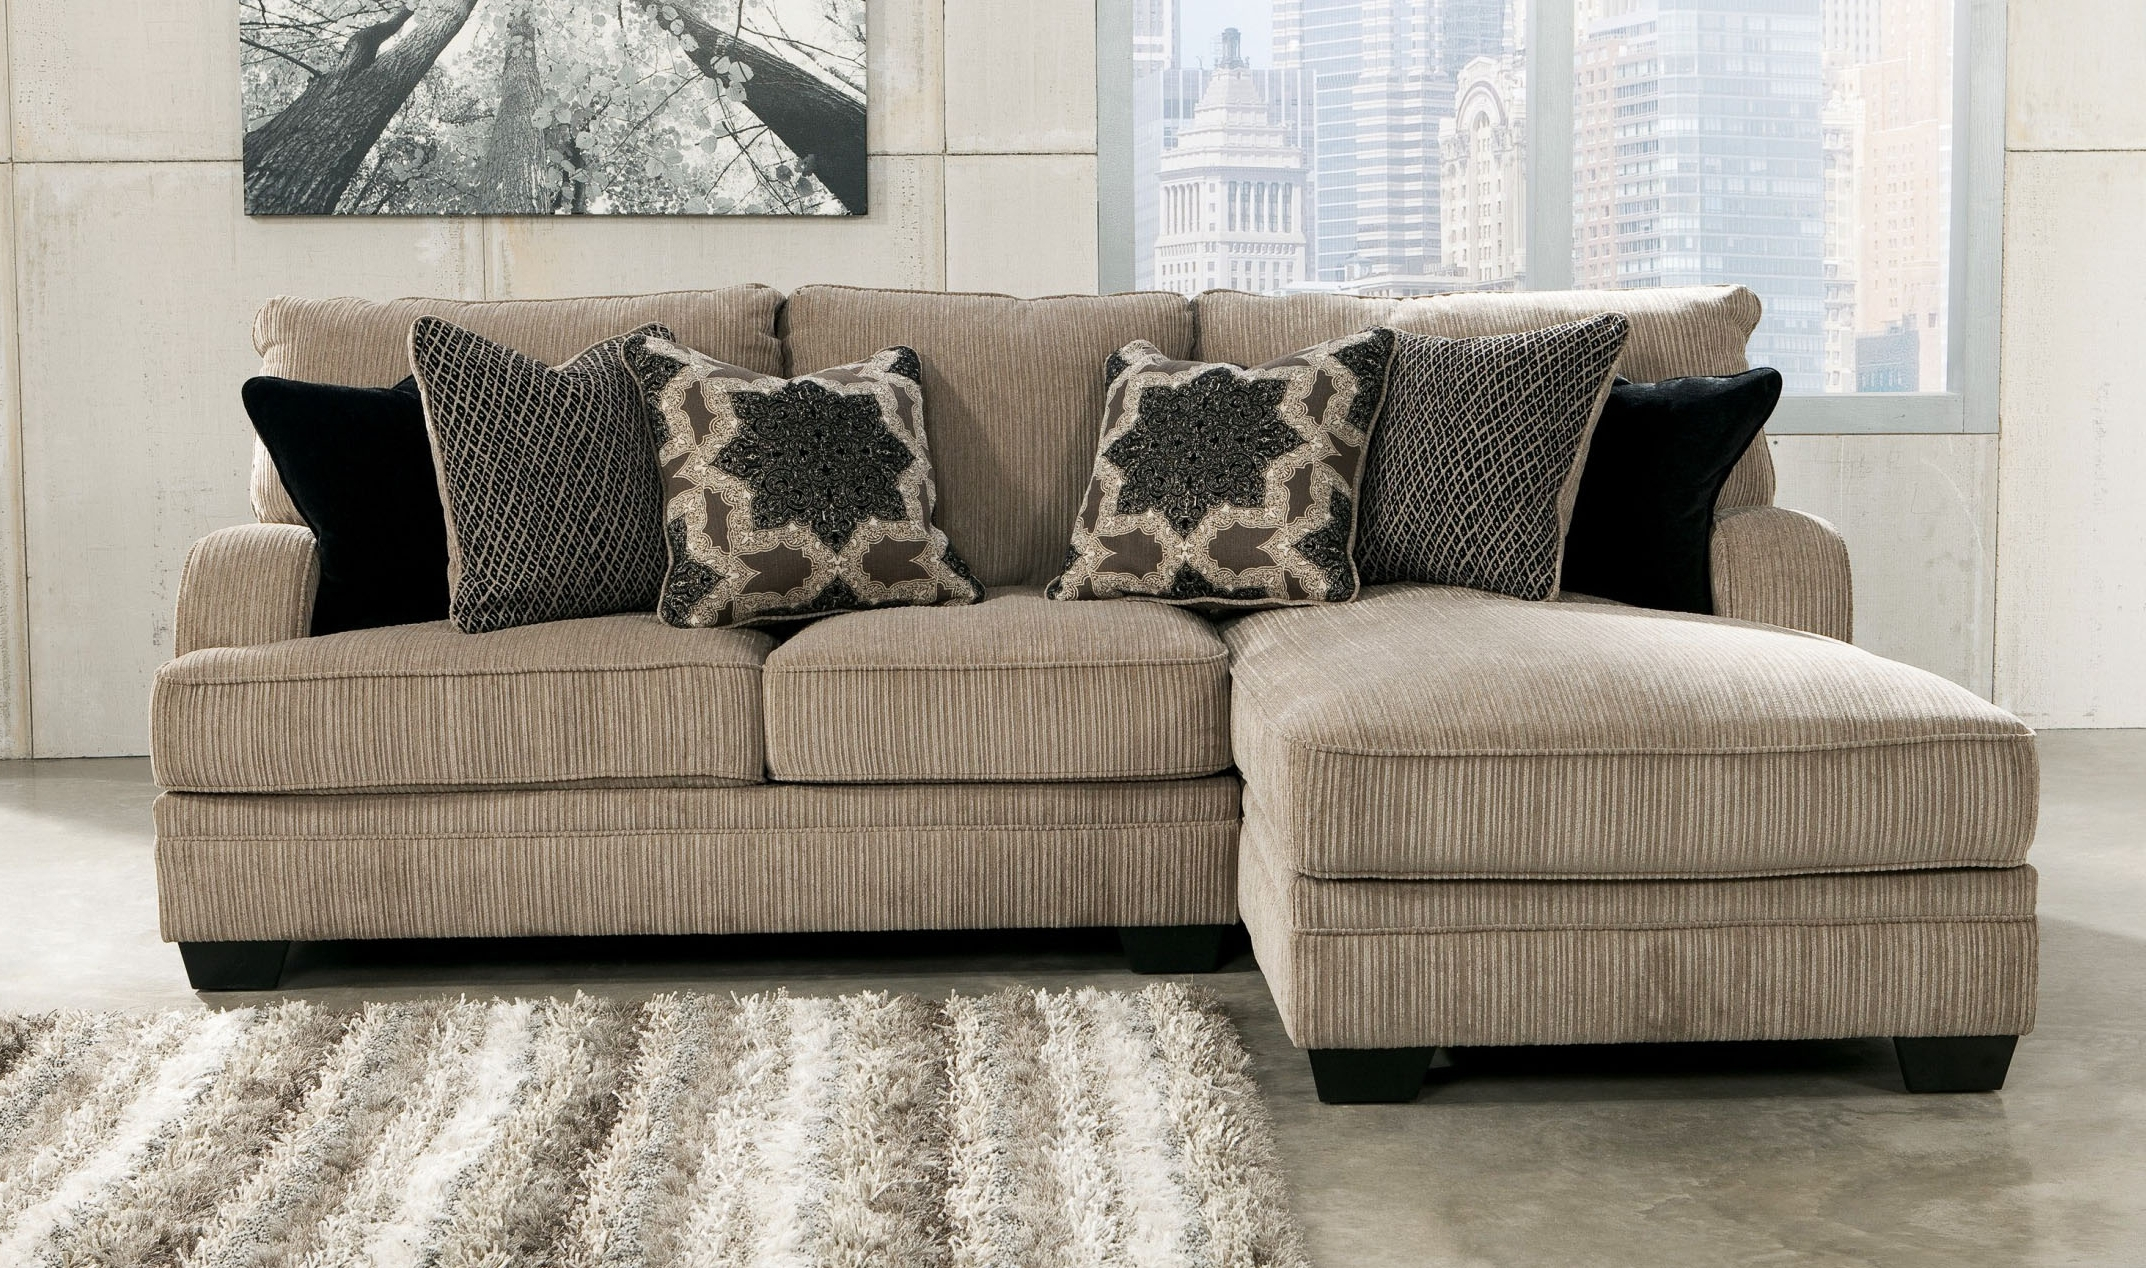 Well Known Small Sectional Sofa With Recliner And Chaise Small Furniture For Within Sectional Sofas With Recliners For Small Spaces (View 14 of 15)